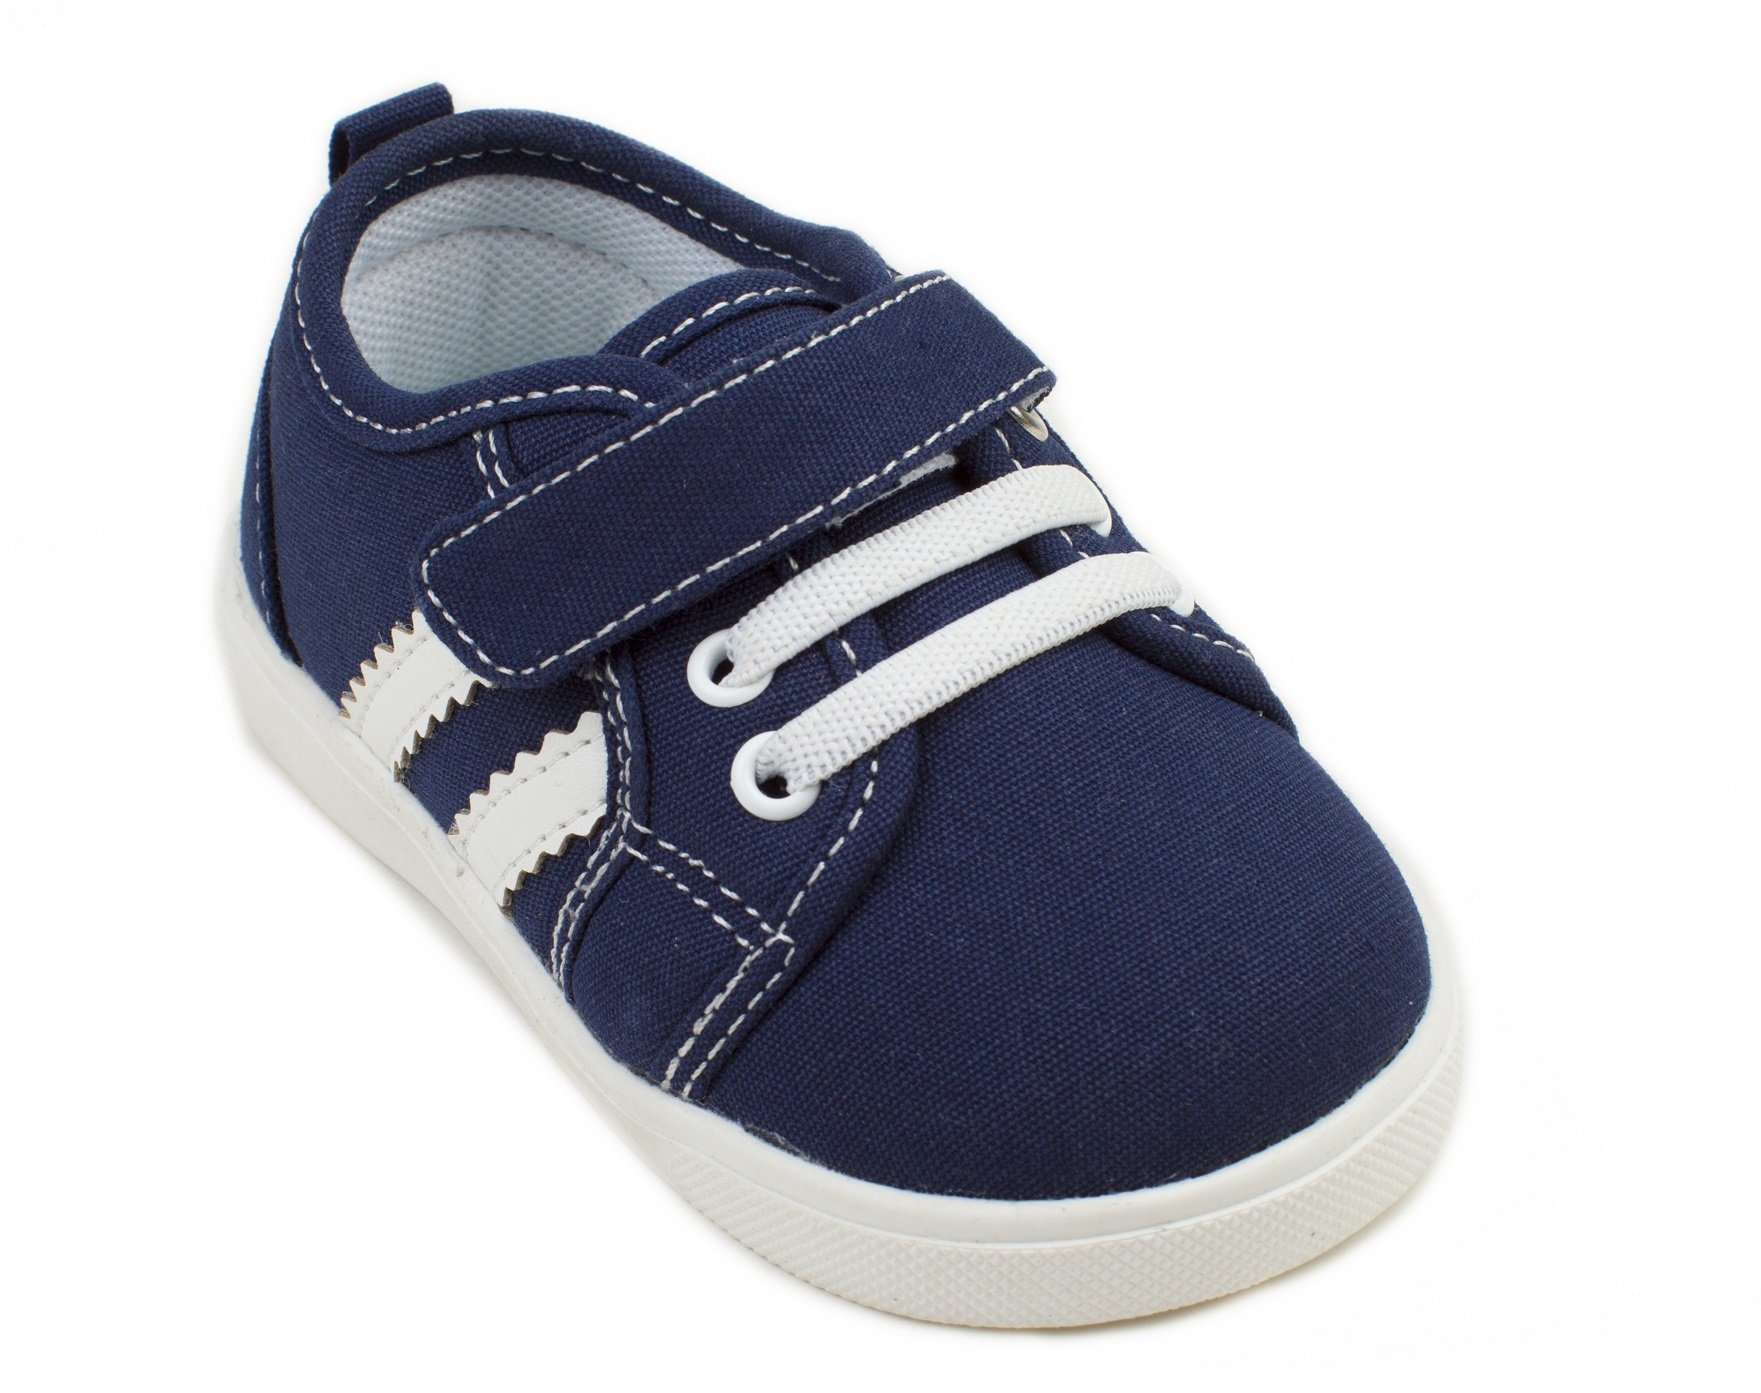 Wee Squeak Tennis Shoe Navy - Size 6